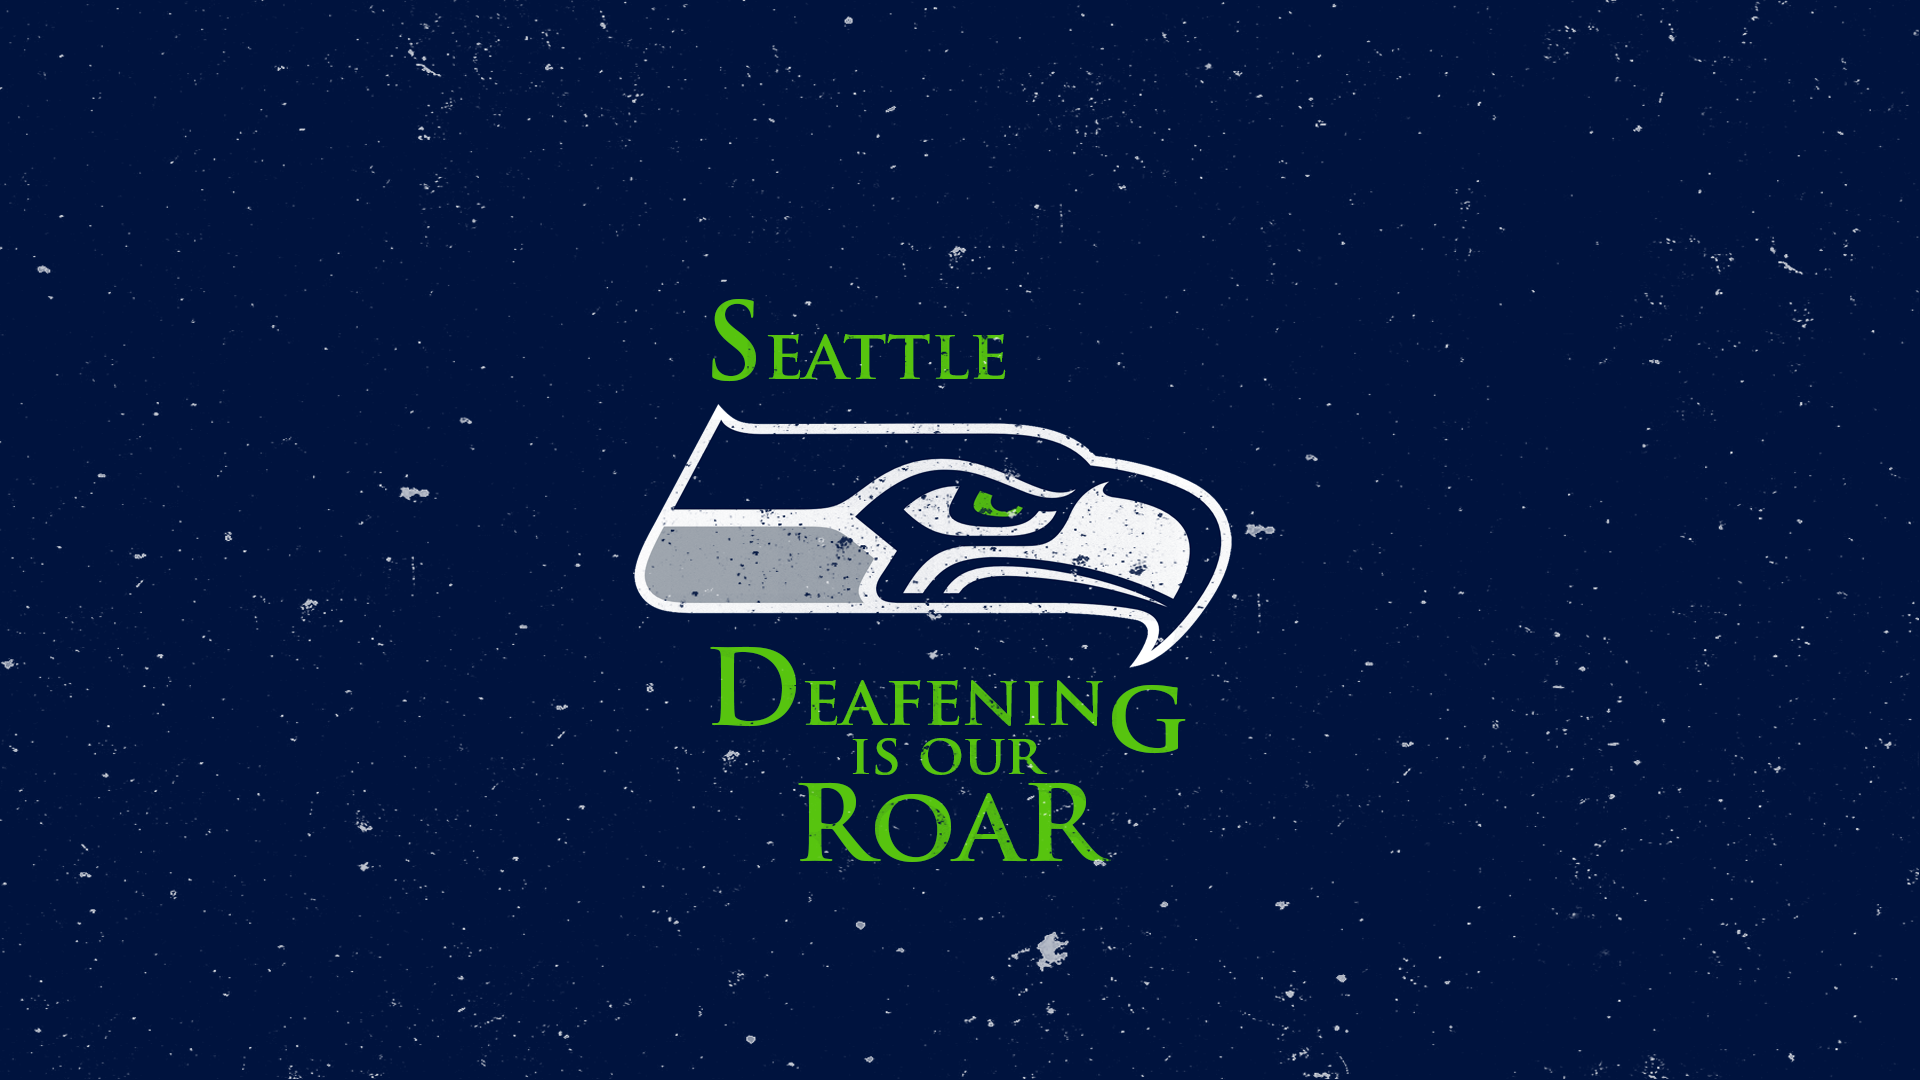 Seattle seahawks wallpaper 55978 1920x1080 px hdwallsource seattle seahawks wallpaper 55978 voltagebd Image collections